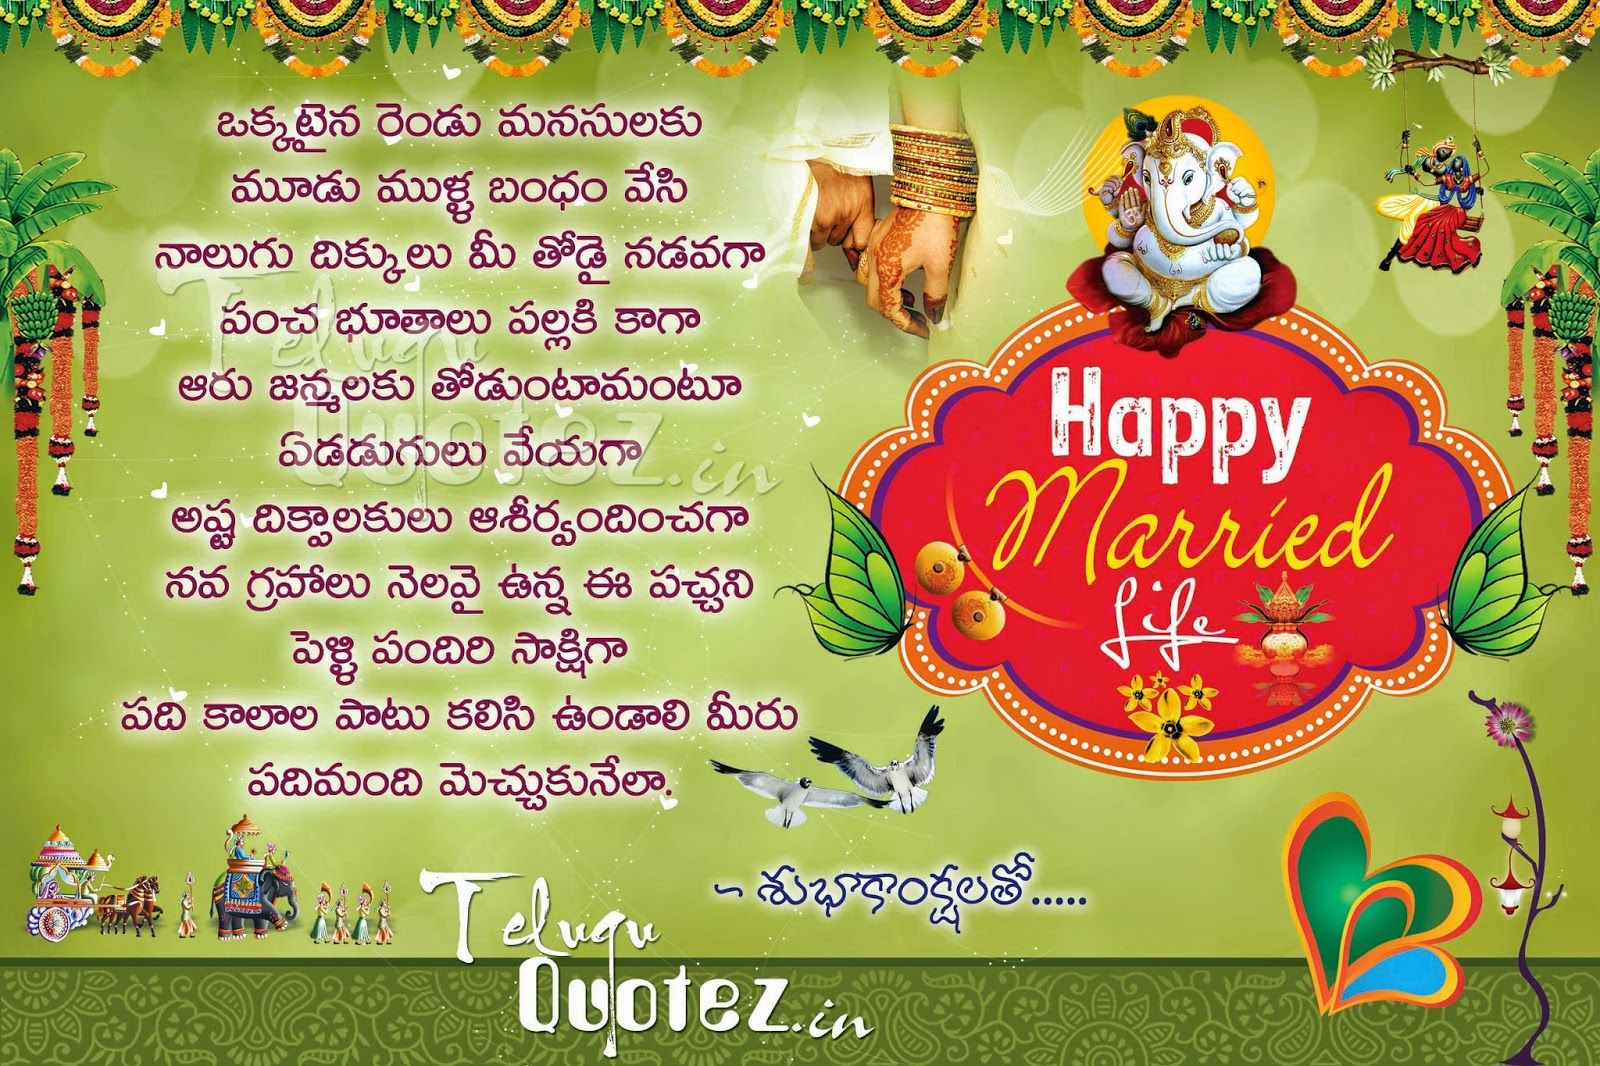 Indian Wedding Telugu Wishes For Couples In 2019 Wedding